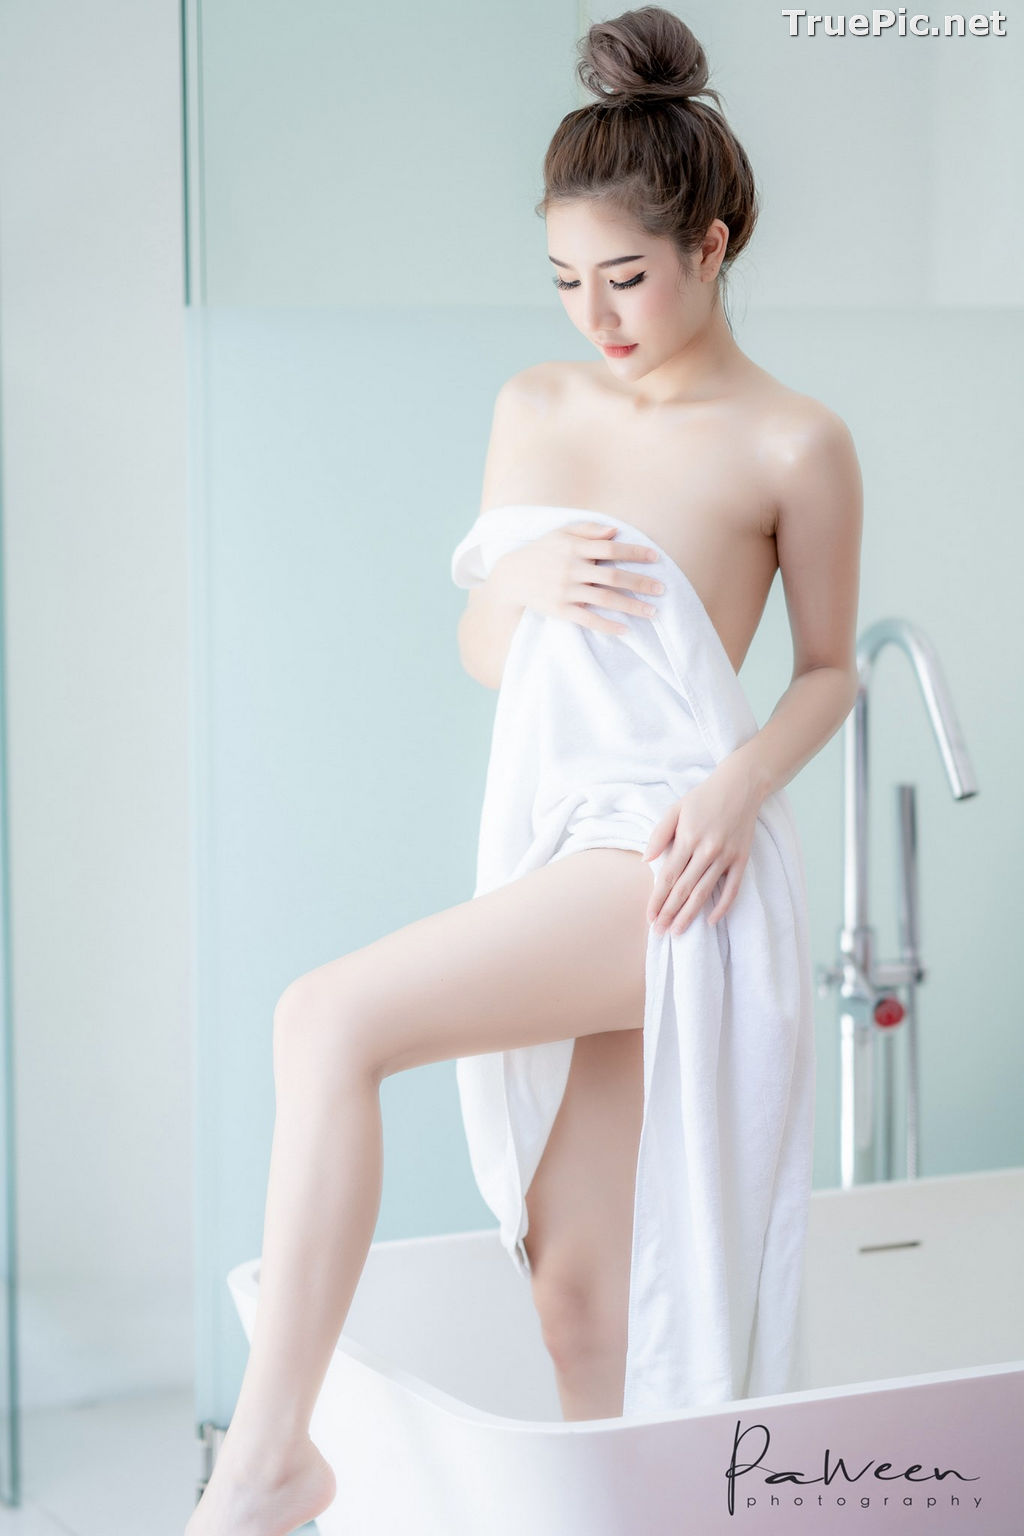 Image Thailand Model - Atittaya Chaiyasing - Take Shower After a Nice Day - TruePic.net - Picture-6